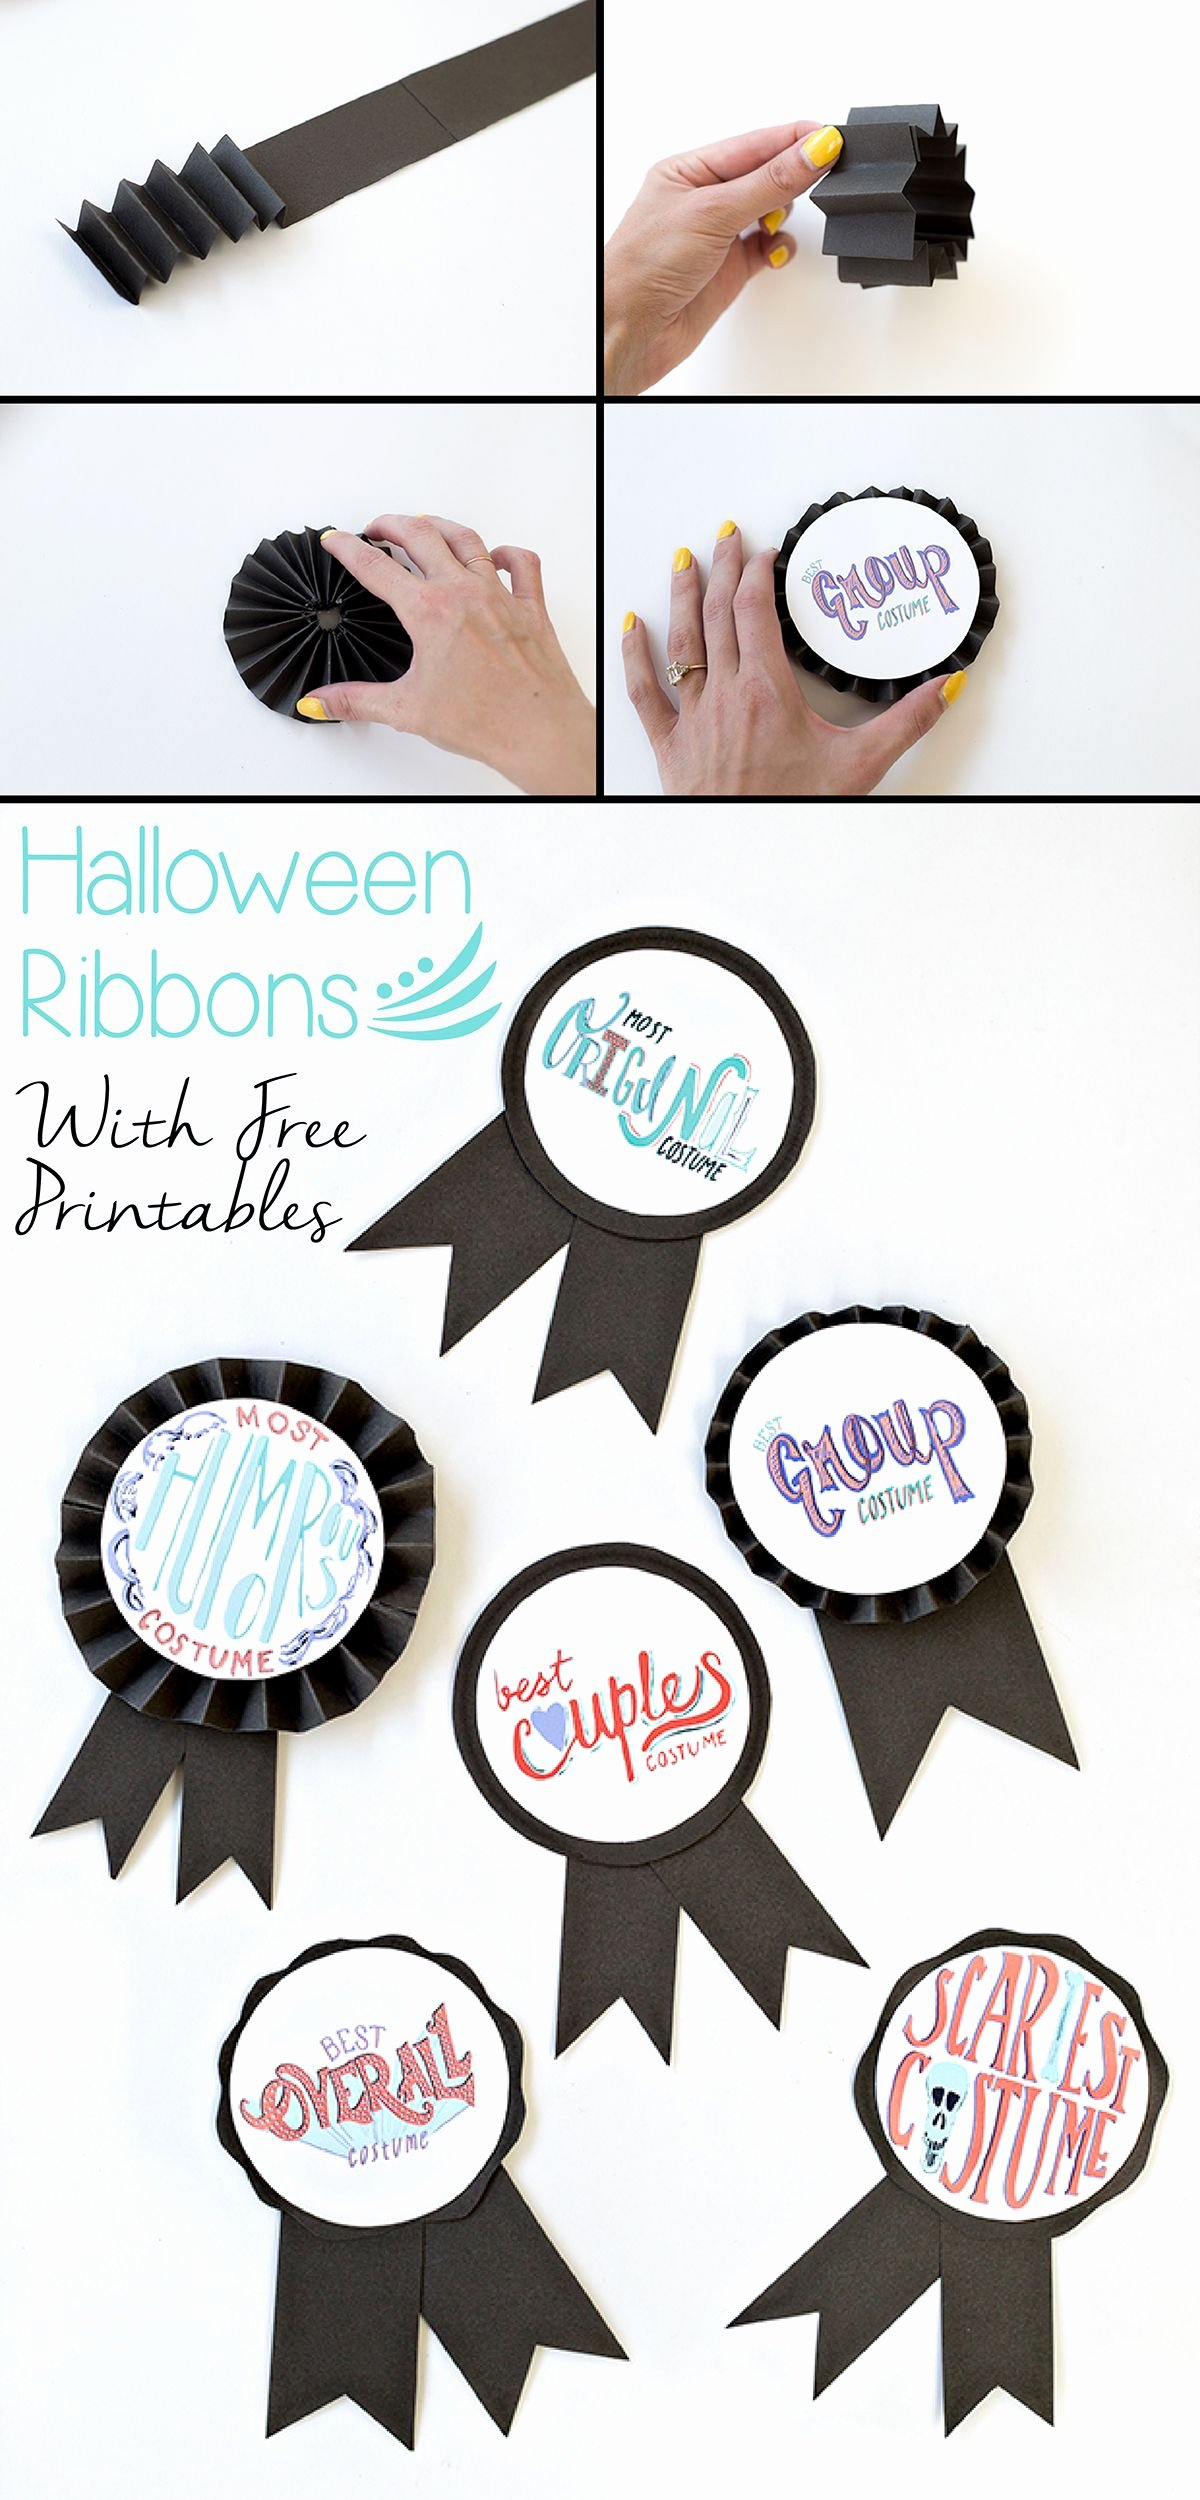 Free Printable Award Ribbons Awesome Diy Halloween Costume Award Ribbons Free Printable